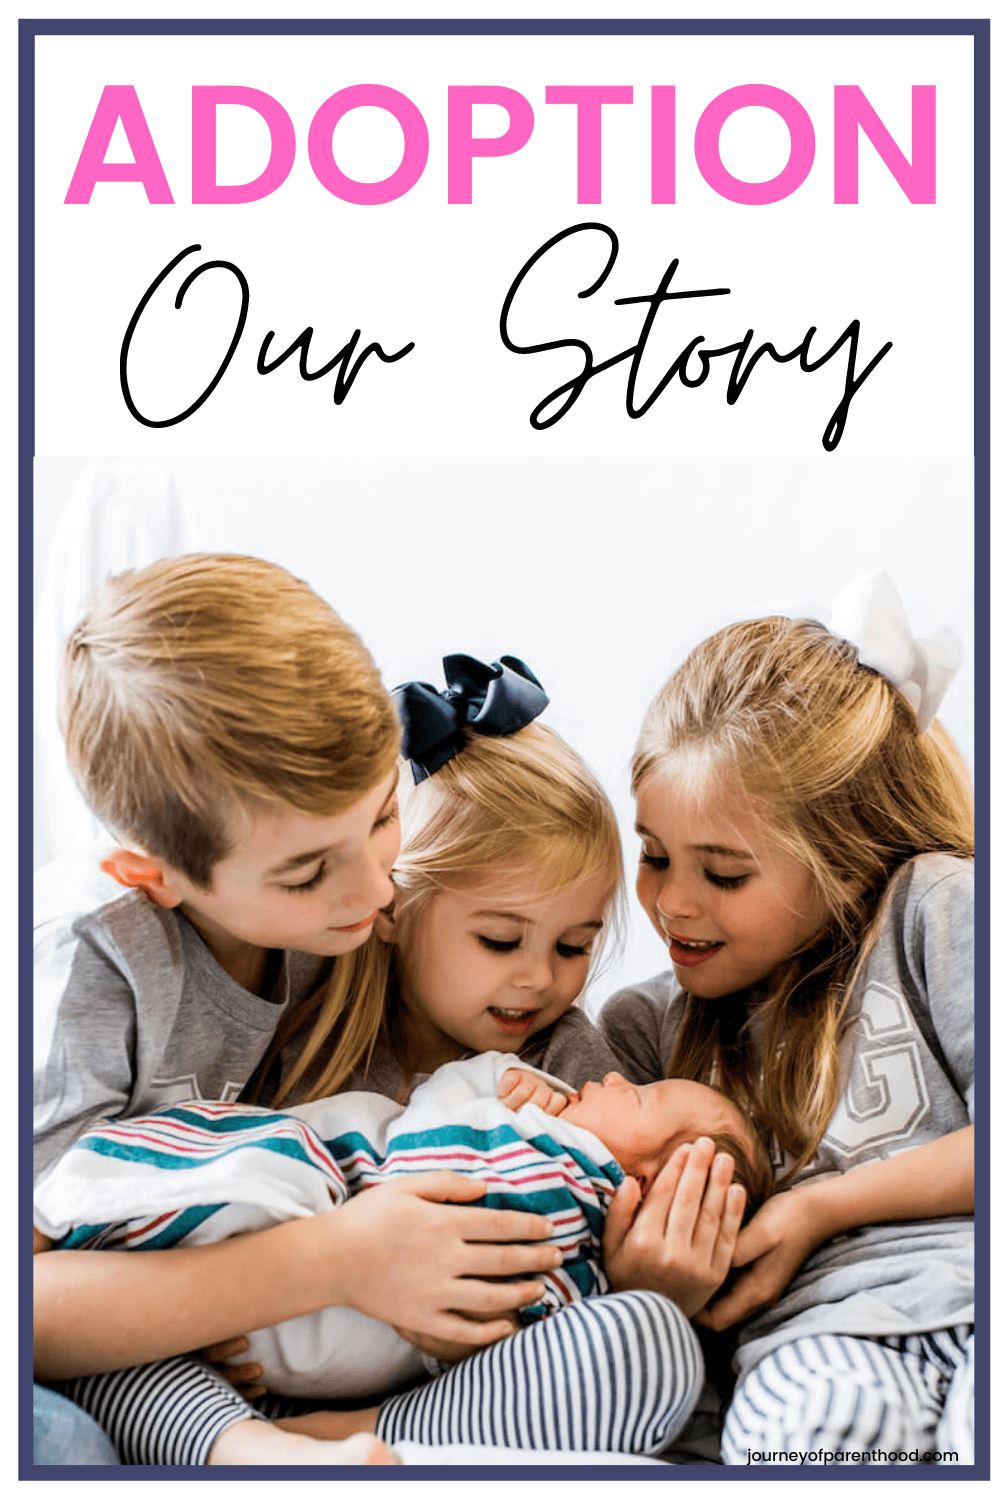 our adoption story - a real life look at the adoption process and adoption journey from an adoptive mom's perspective